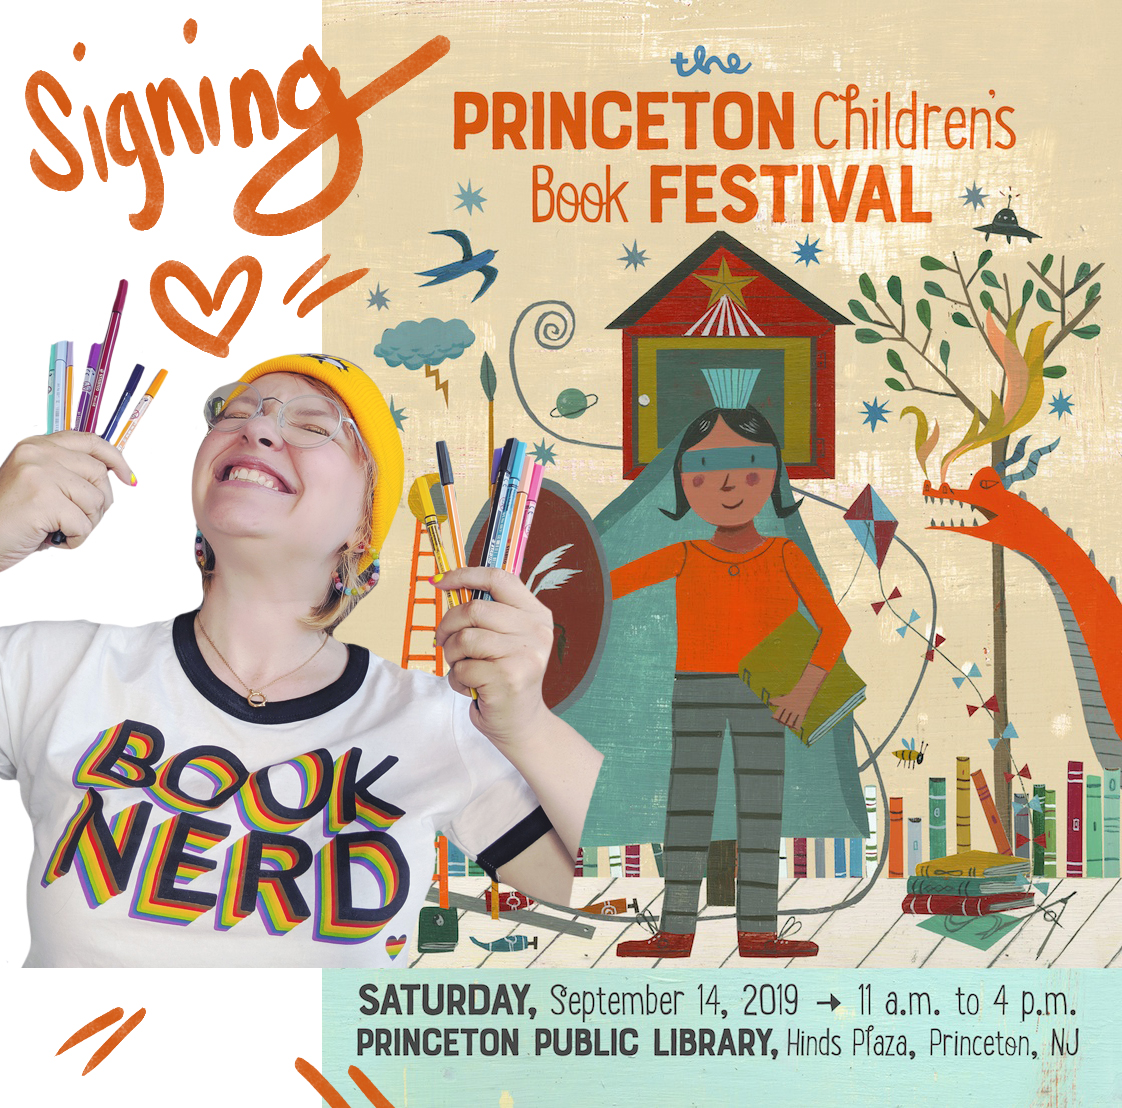 PRINCETON CHILDREN'S BOOK FESTIVAL - Saturday, September 14, 2019Signing and drawing in your books in the Yellow Tent from 11AM-4PM. Come say hi and get your comics personalized!